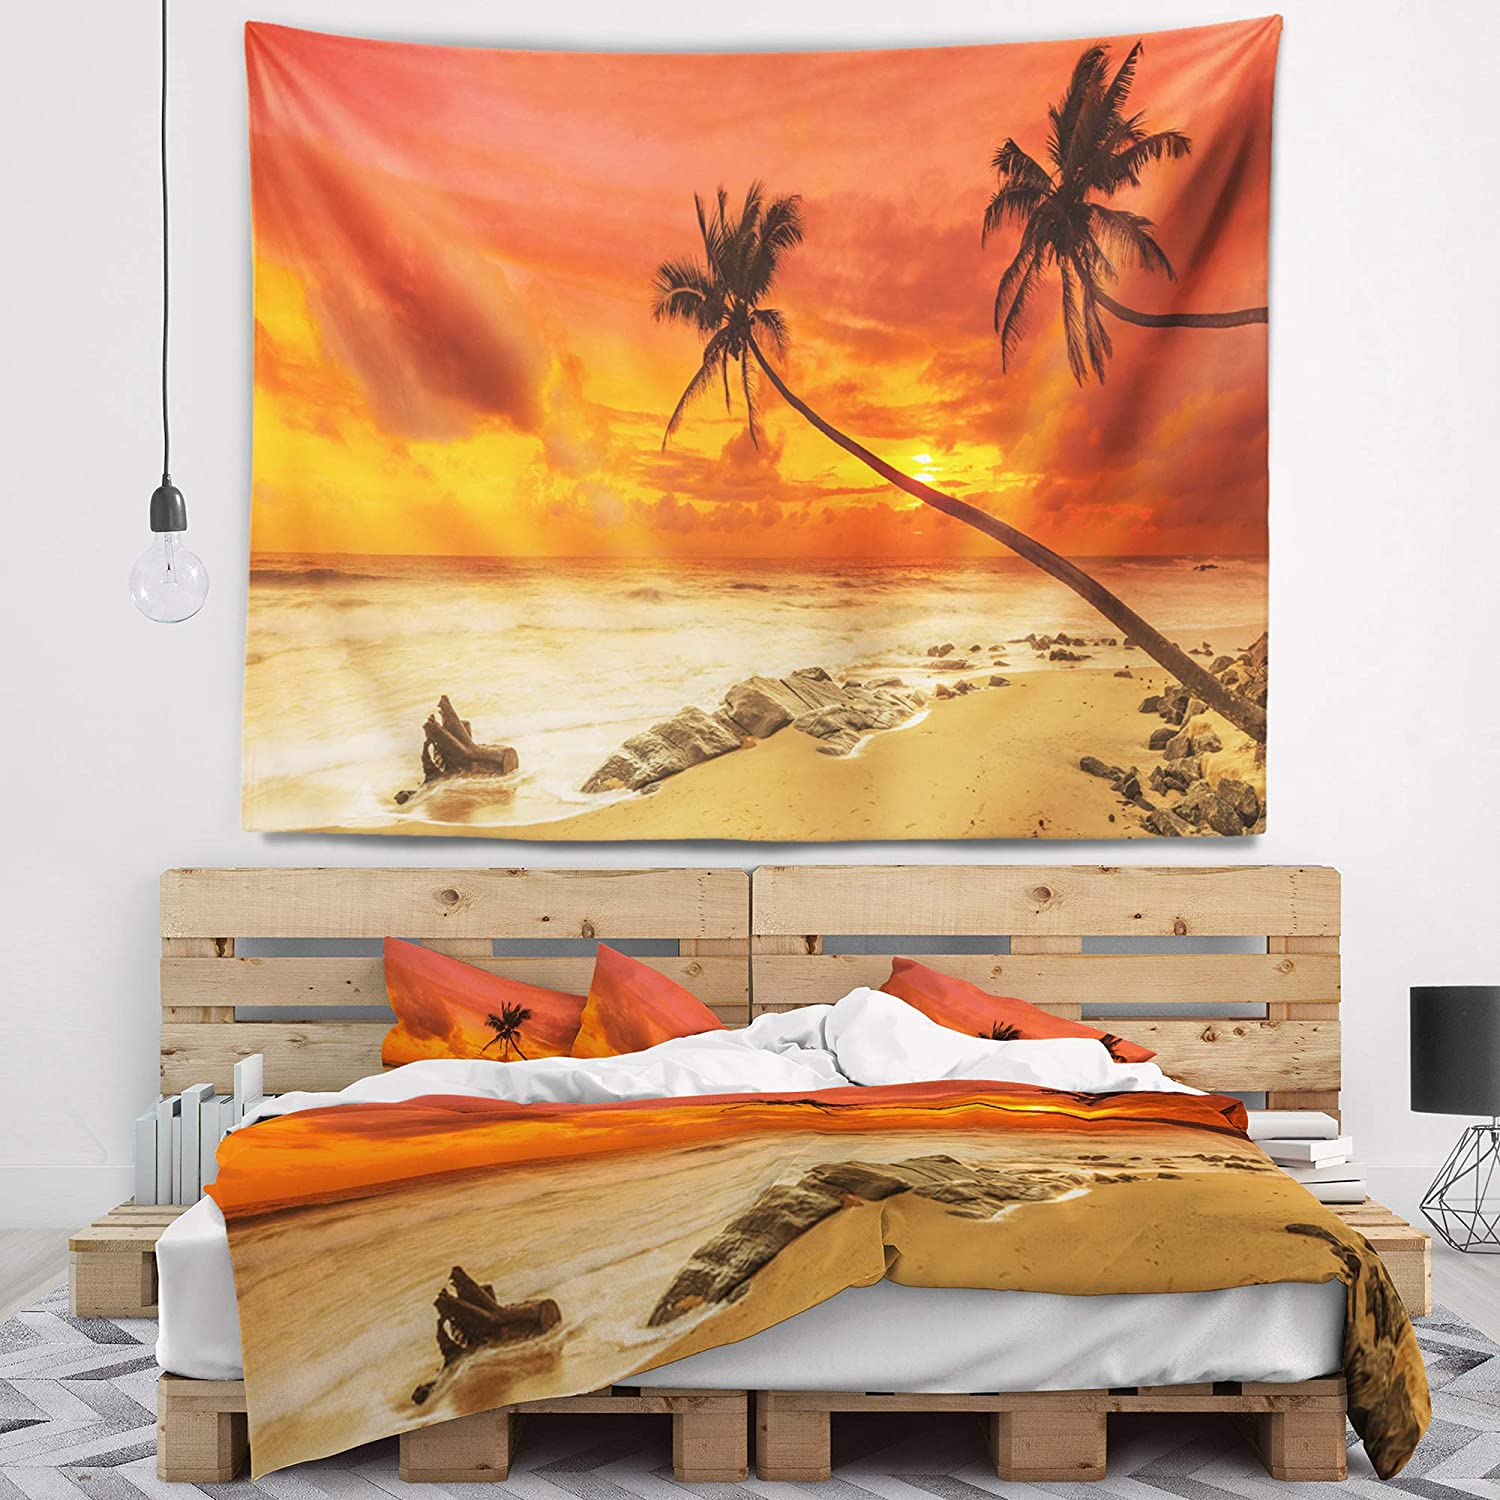 in Designart TAP11312-80-68  Palms Silhouettes Bent Seashore Blanket D/écor Art for Home and Office Wall Tapestry x Large 80 in x 68 in